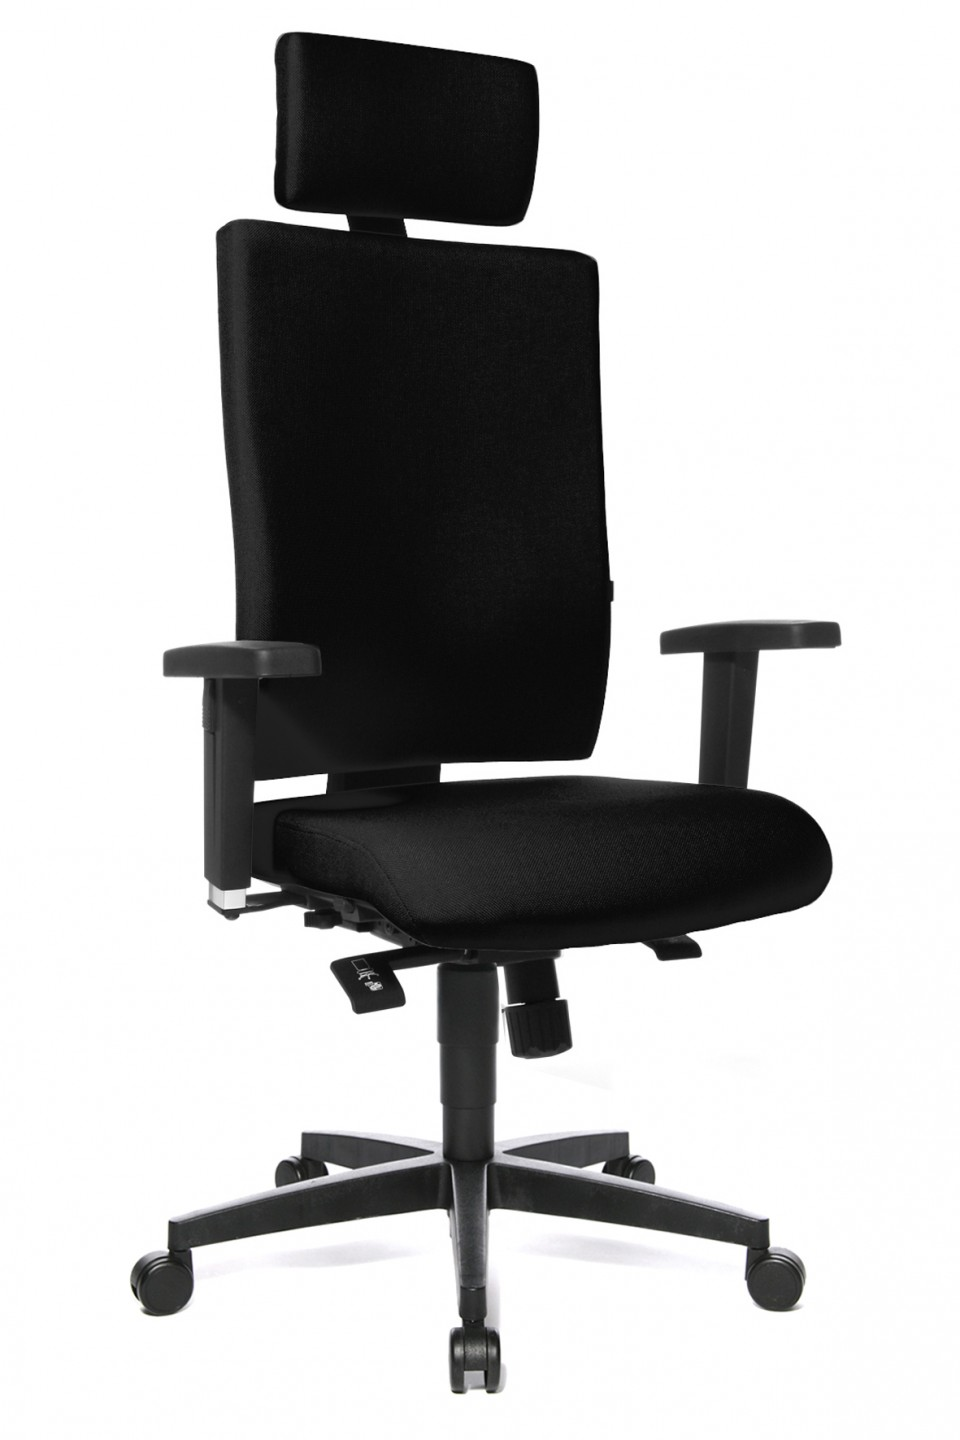 fauteuil bureau ergonomique lightstar achat si ges ergonomiques 449 00. Black Bedroom Furniture Sets. Home Design Ideas